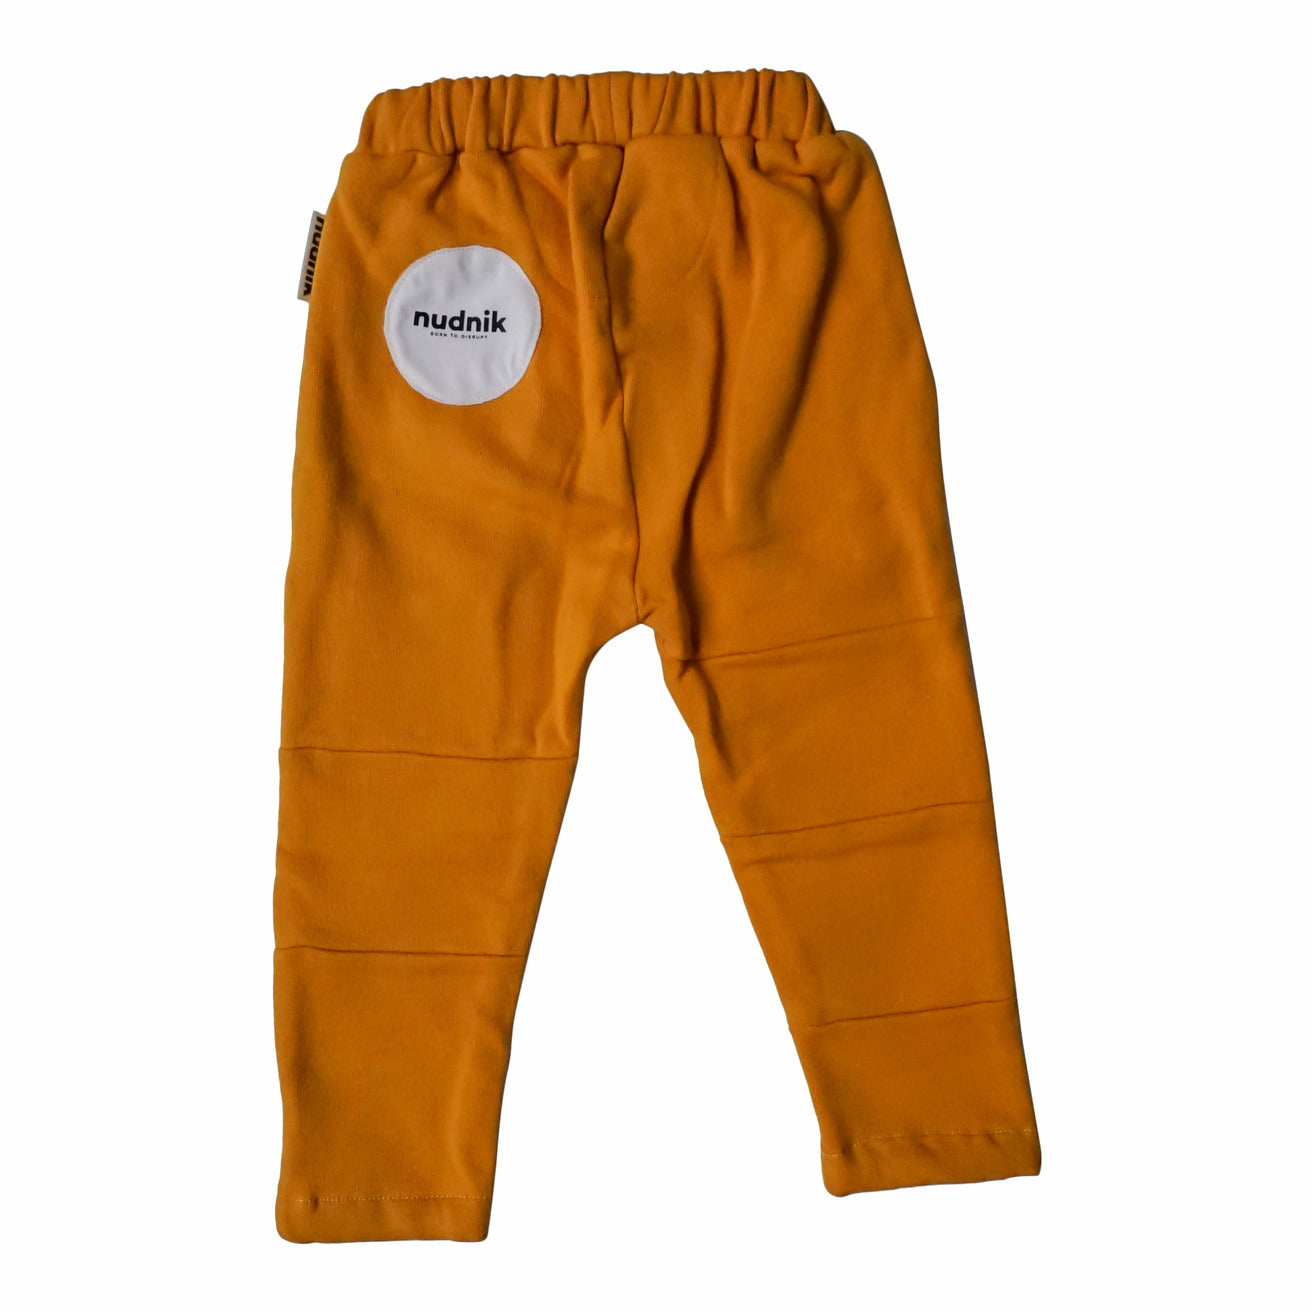 INNOVATOR JOGGER in Happy Yellow - NUDNIK